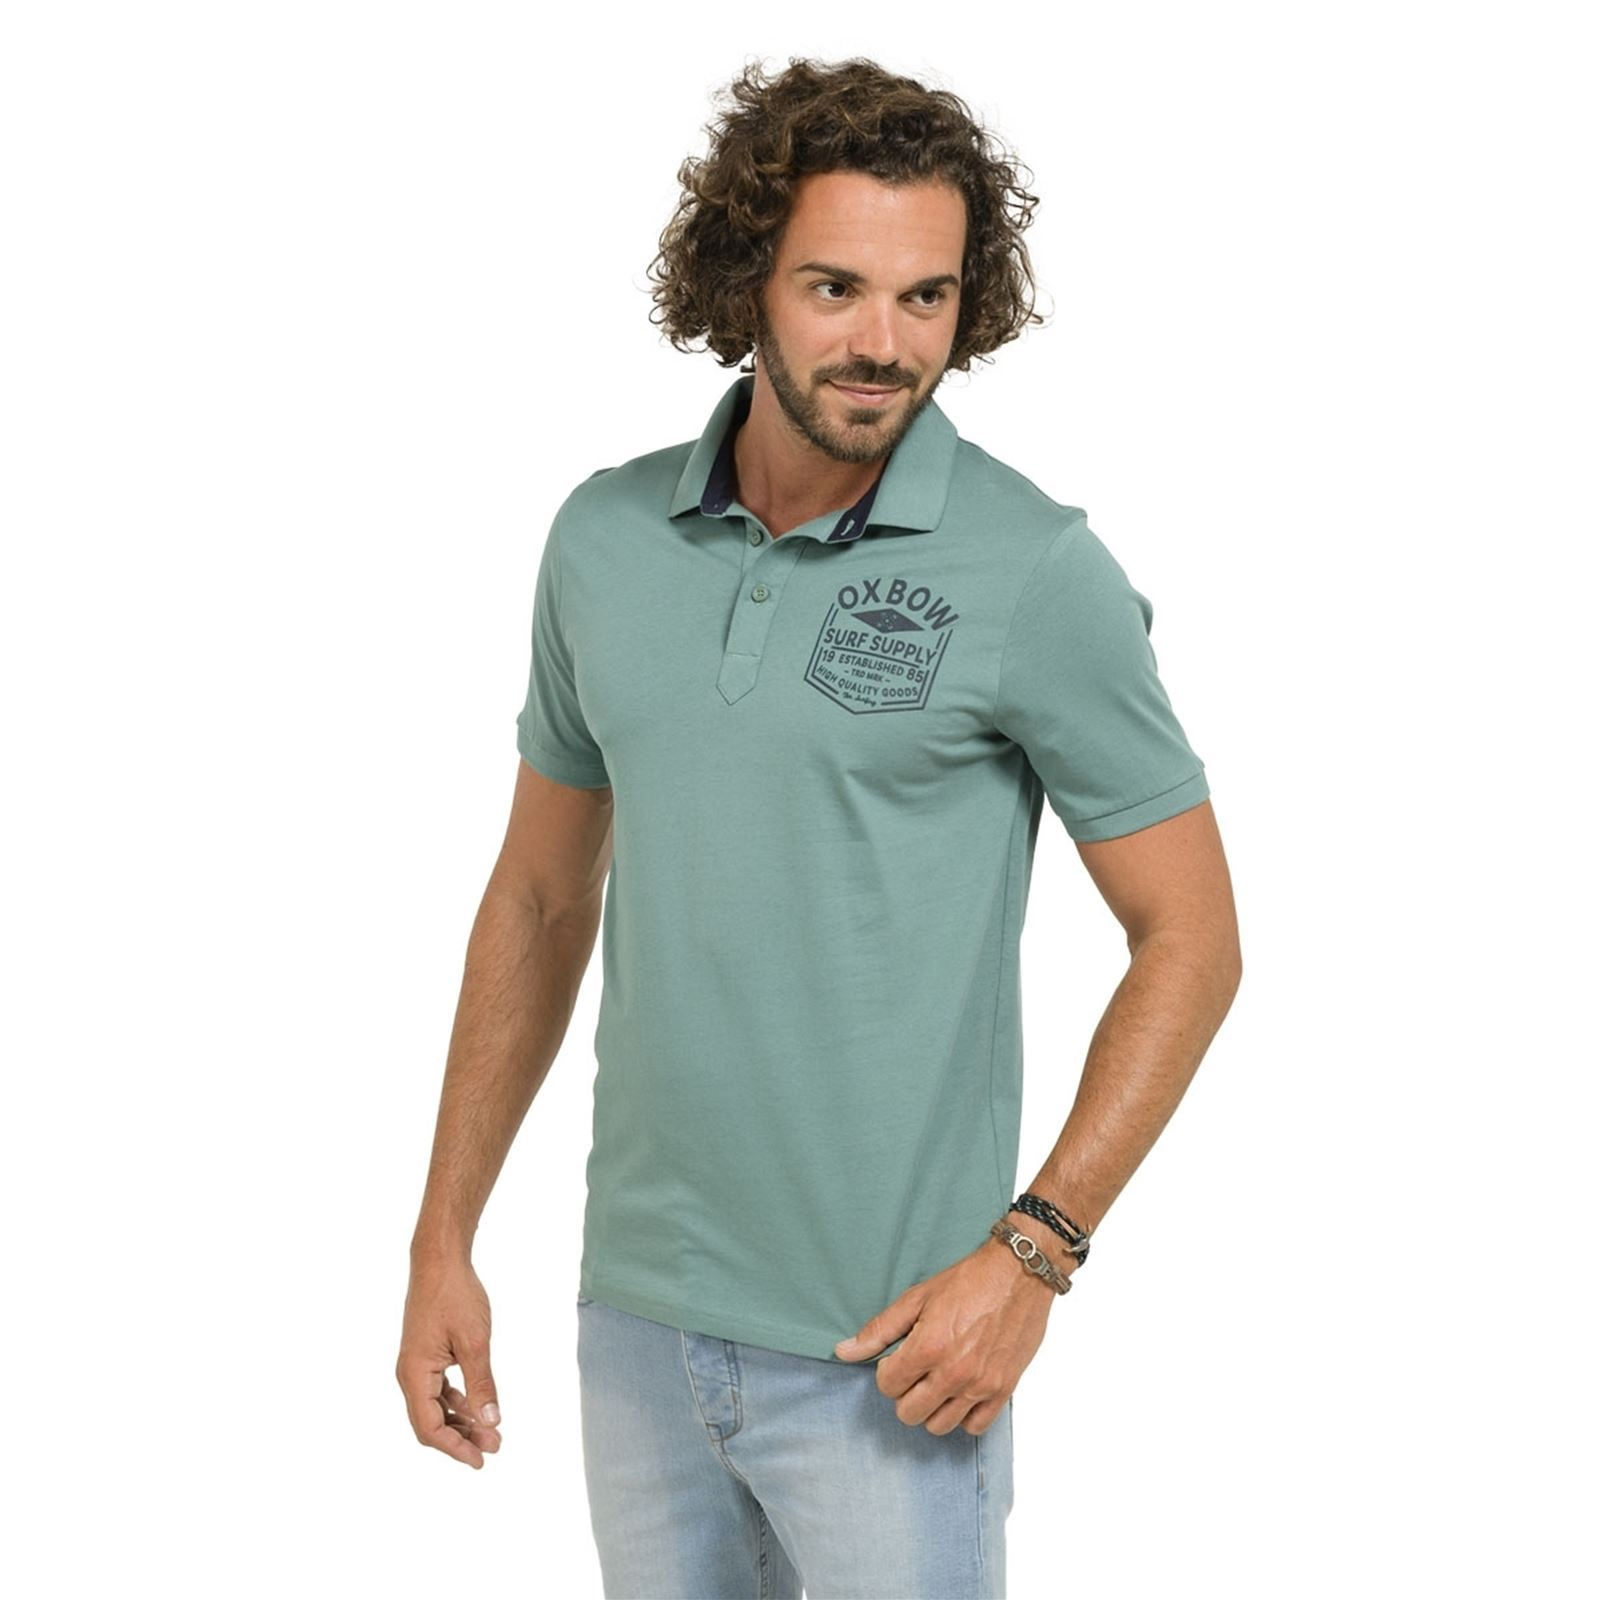 Courtes Homme V Oxbow Manches Pistache NimrodPolo xBedWroC